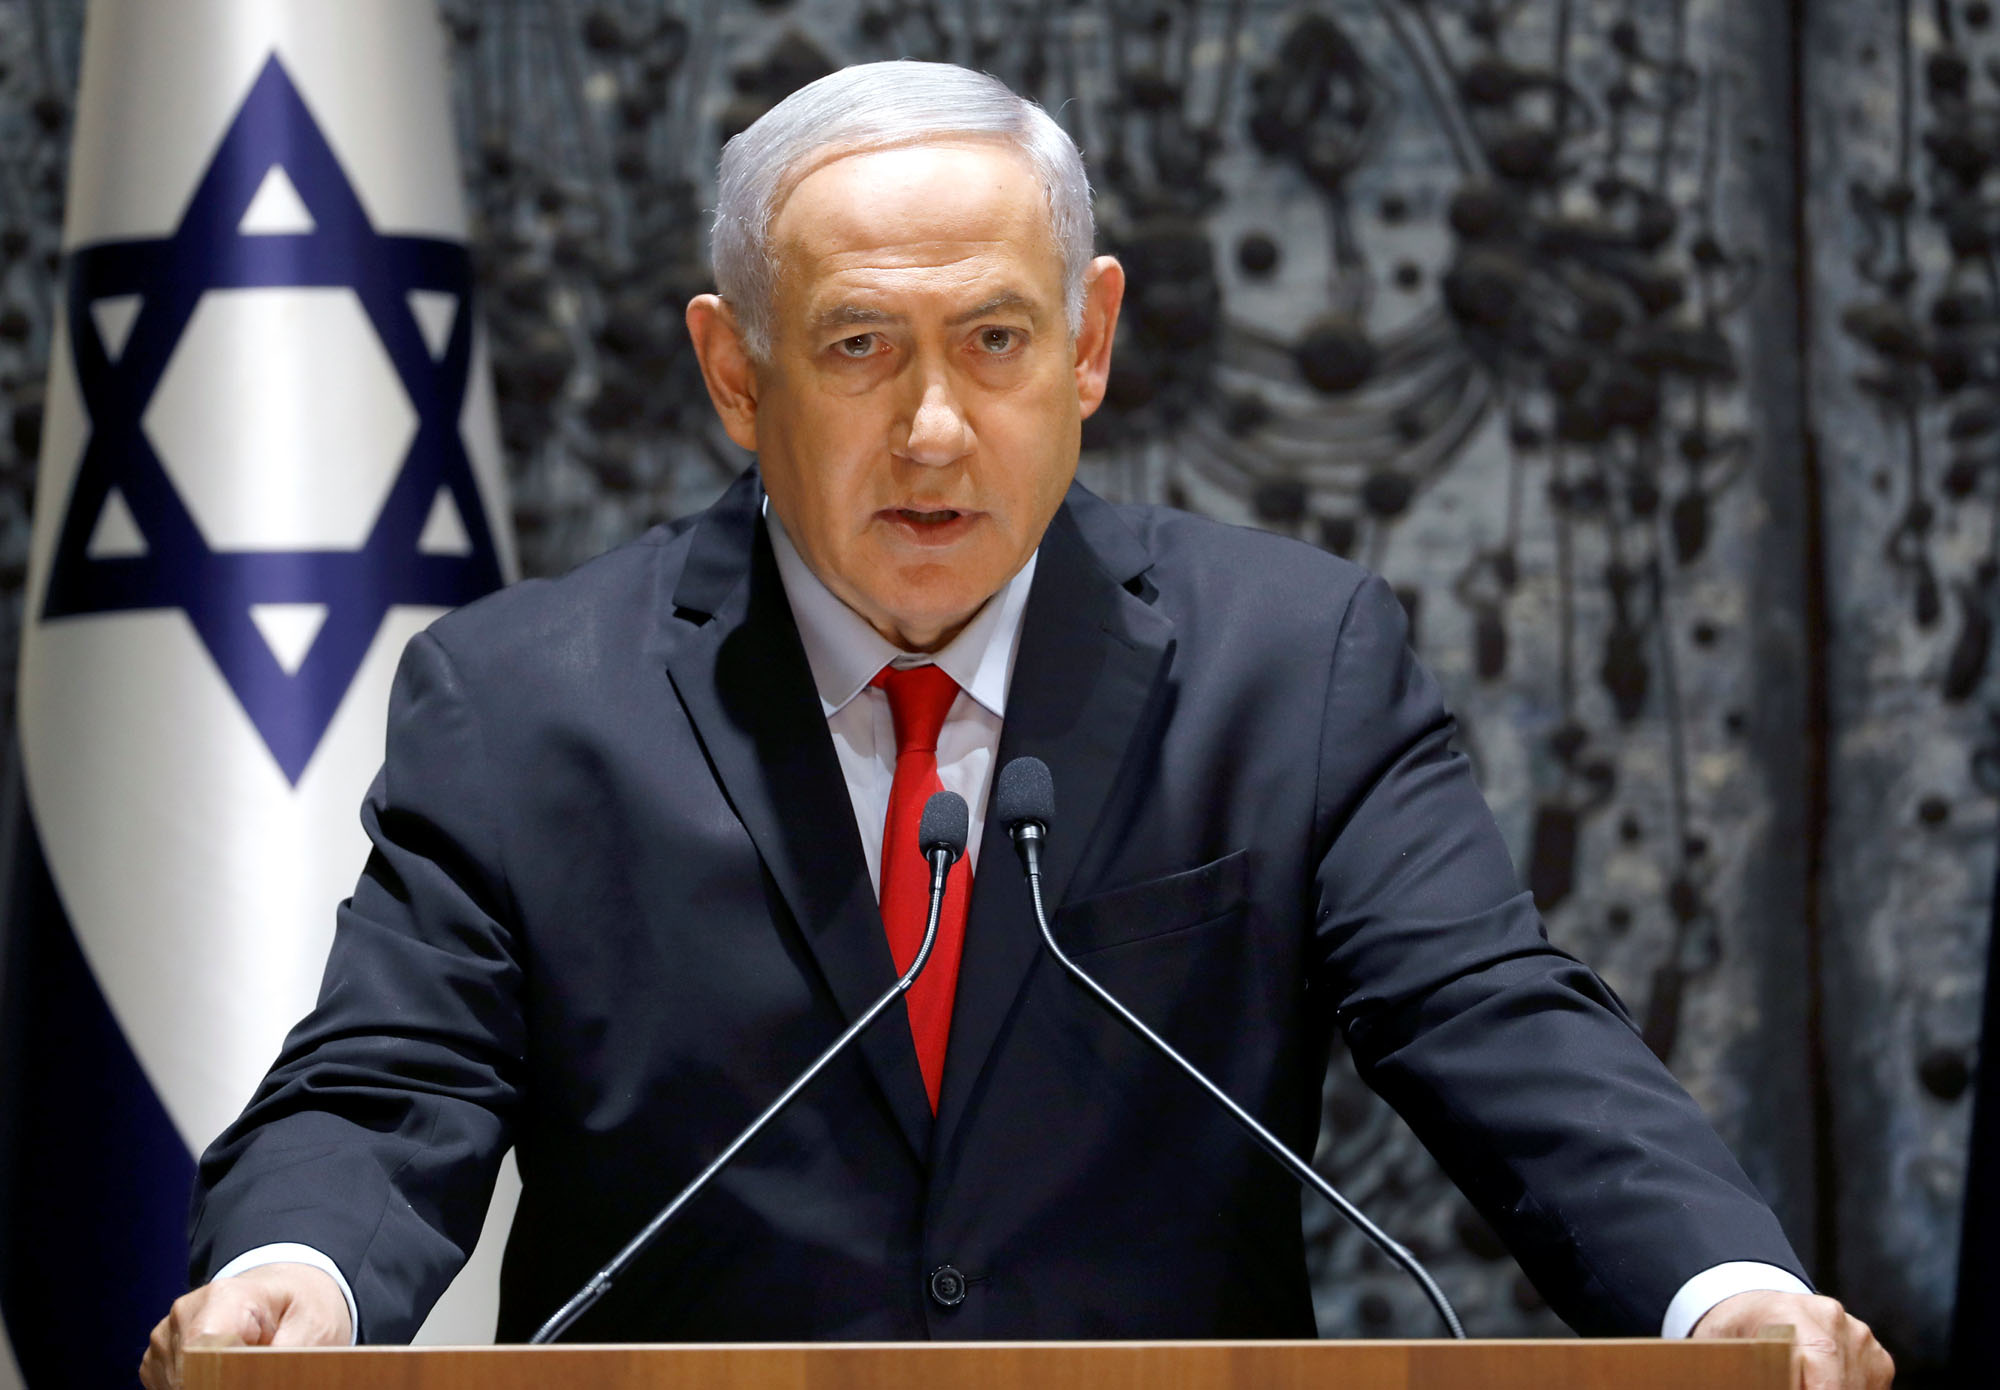 Israeli Prime Minister Benjamin Netanyahu attends a news conference last Wednesday after he was entrusted with forming the next government. | REUTERS